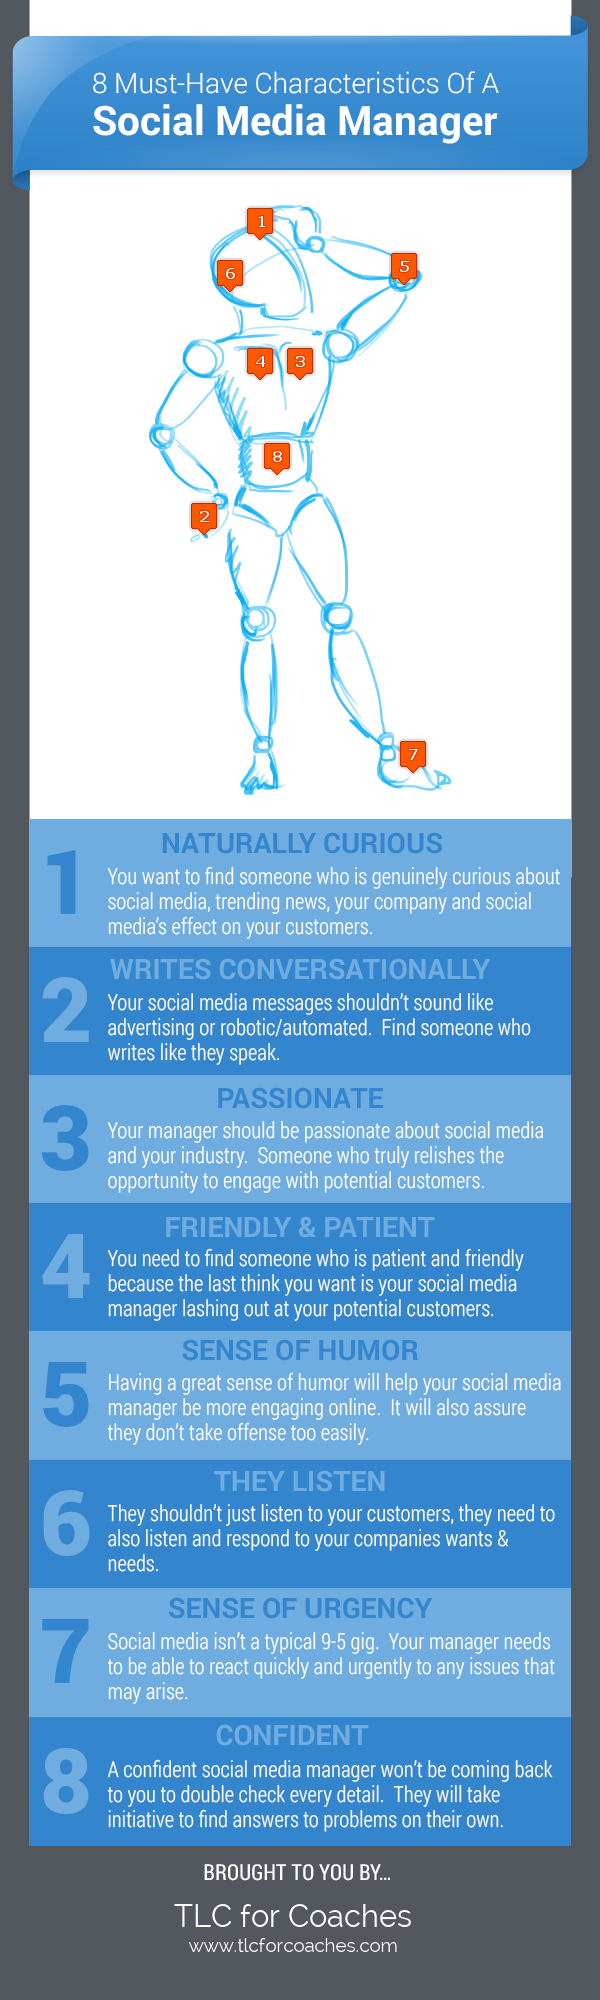 8 Must Have Charactaristics of a Social Media Manager